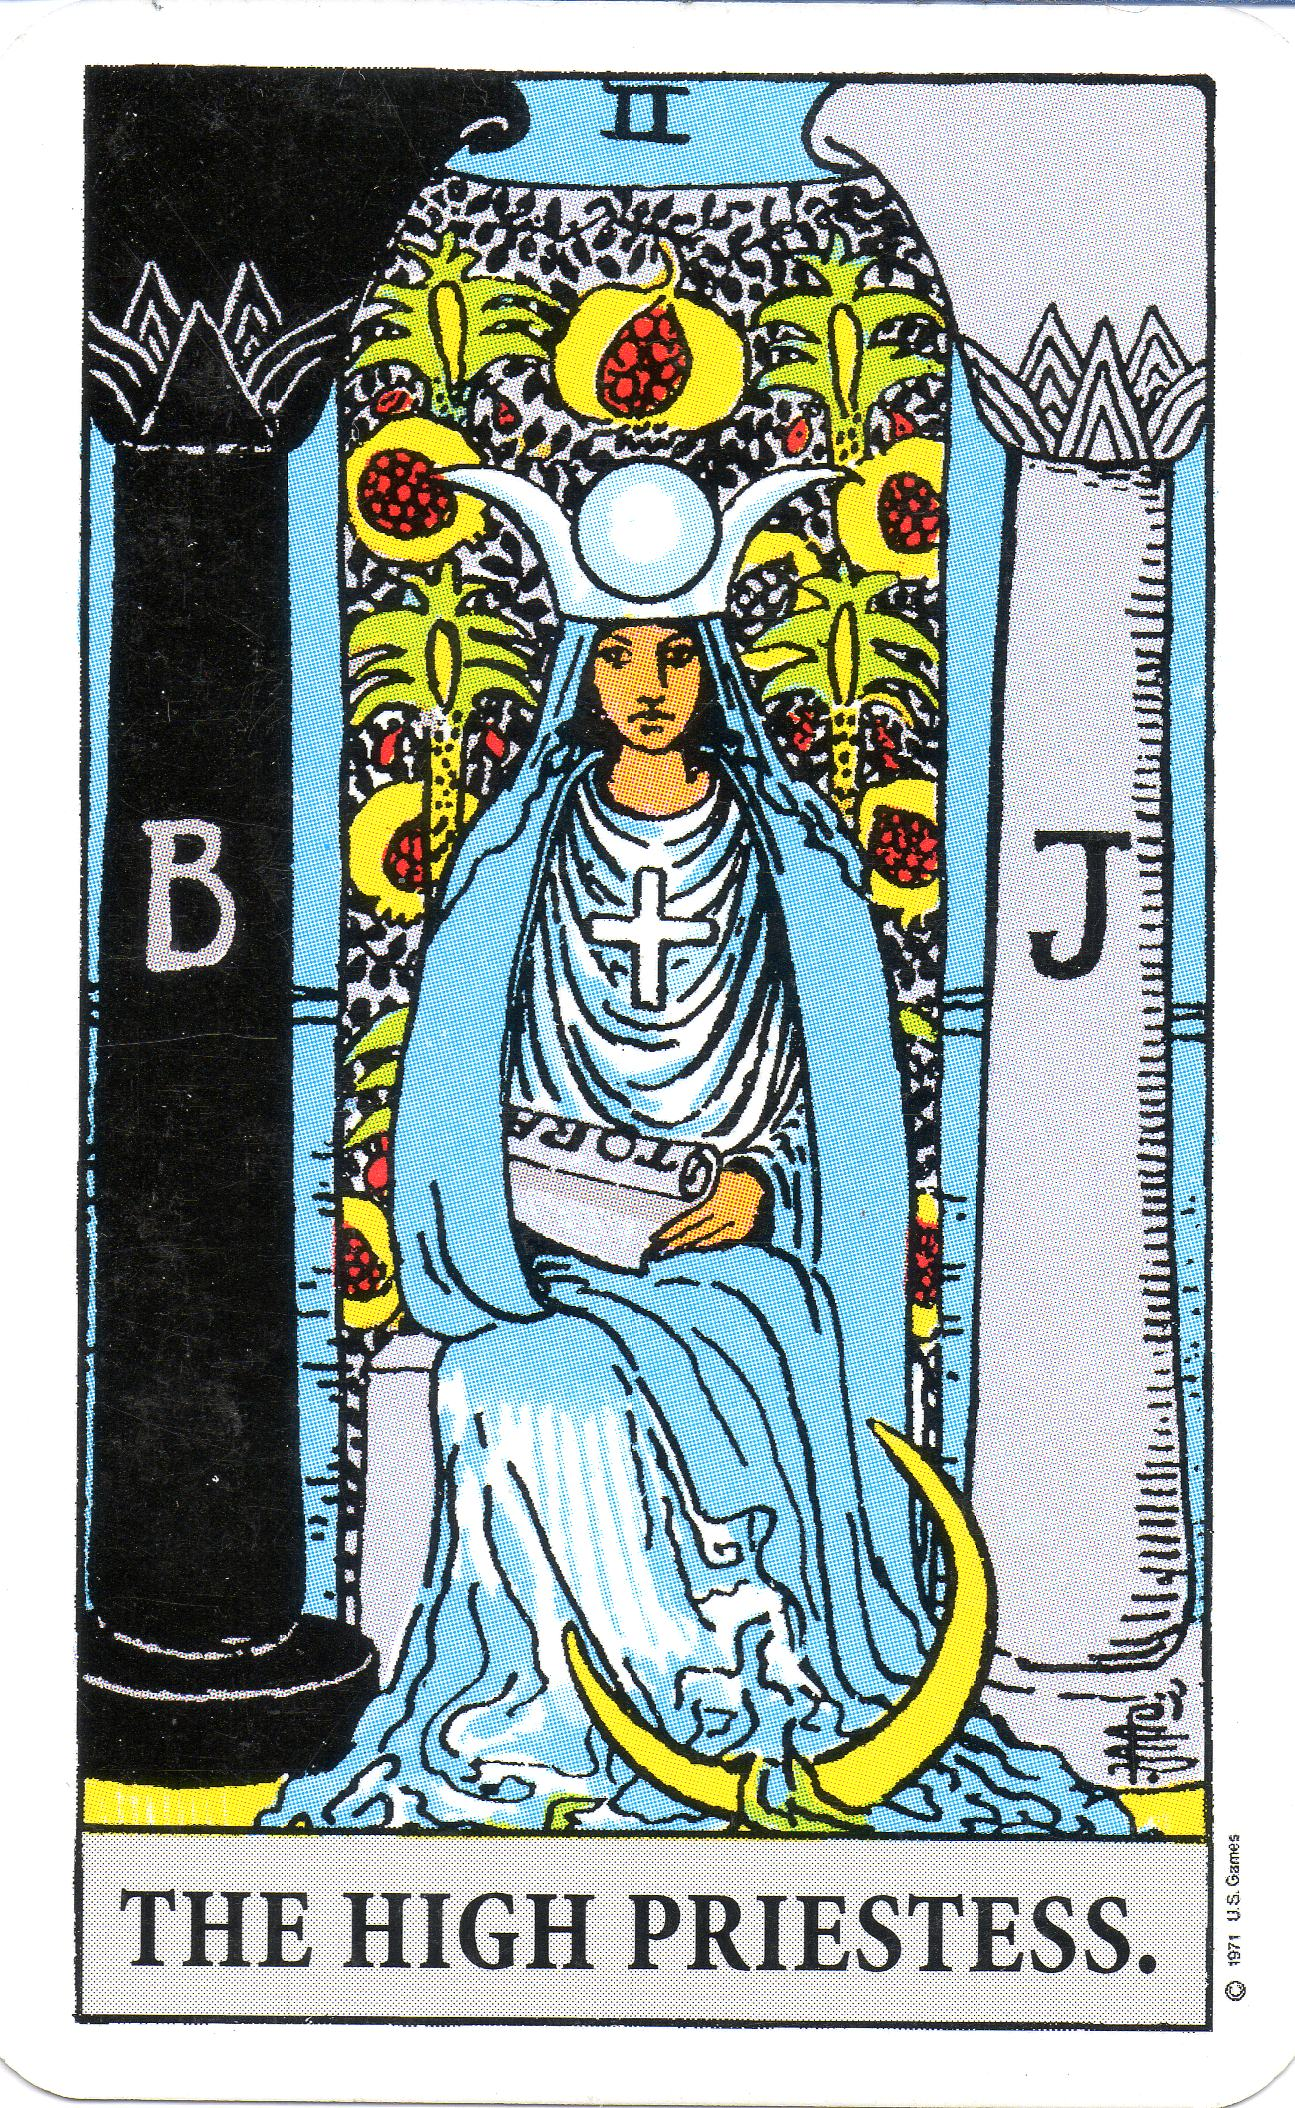 New Moon: The High Priestess and No Action